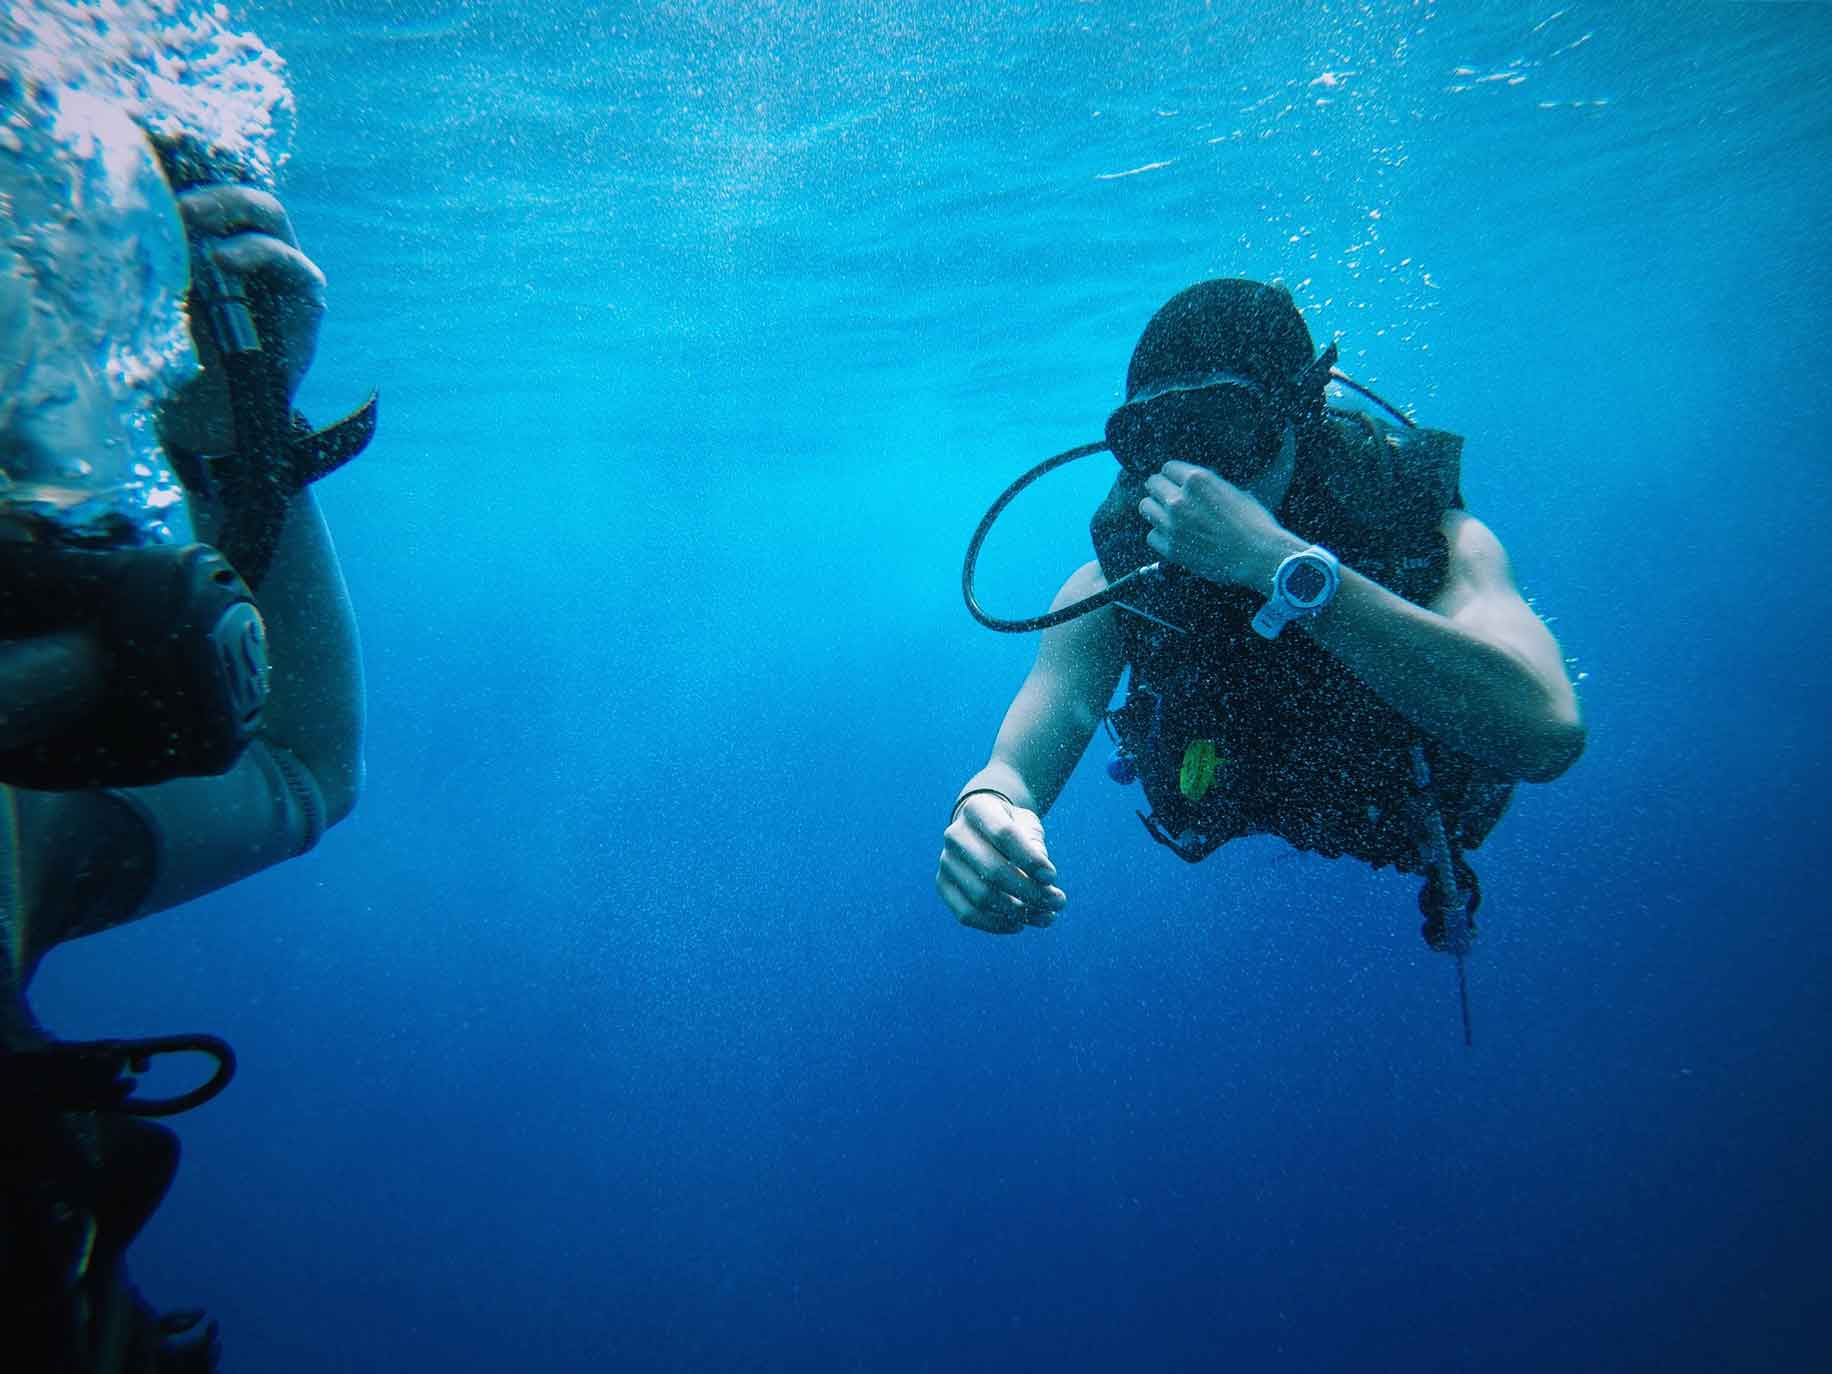 conduction diving